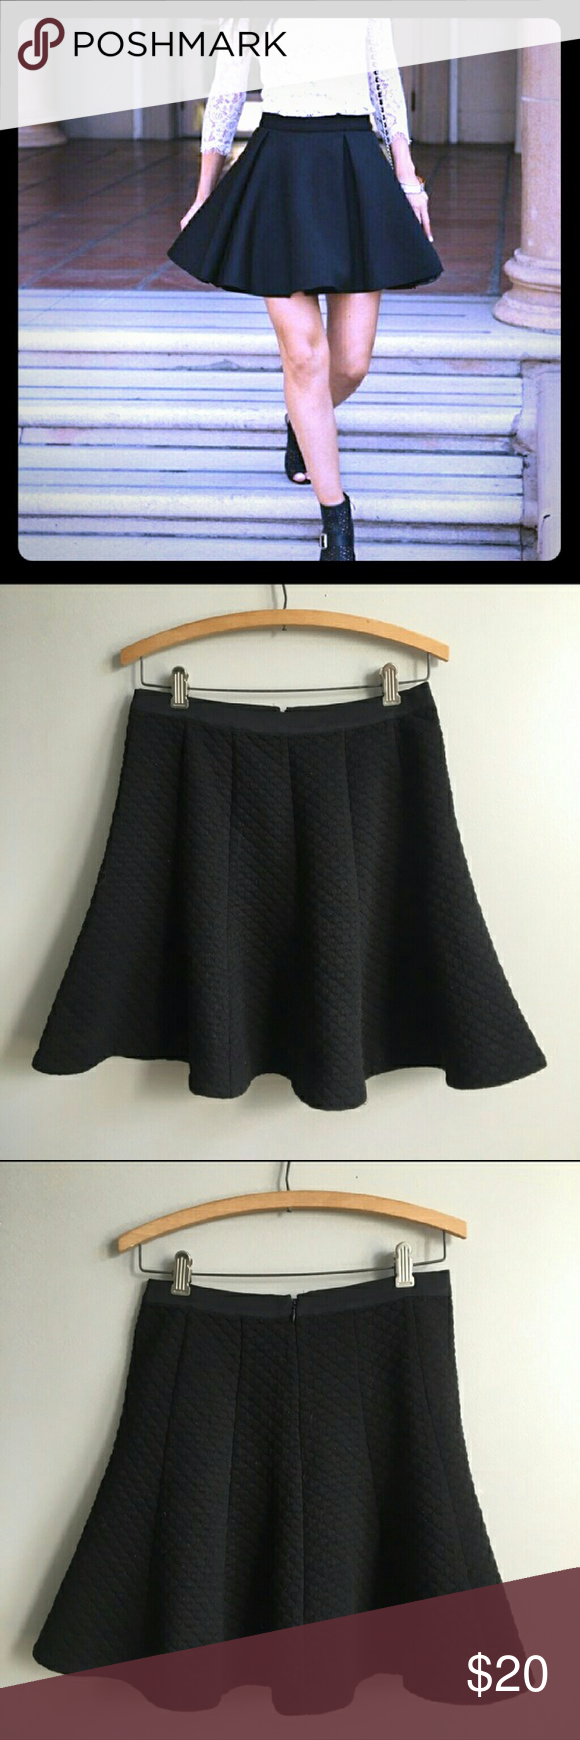 Anthropologie Black Skater Skirt Beautiful classy black skirt from Anthropologie. 🌼Back zip up and waist band. Really good quality, not thin fabric at all!! 🌷 size S but fits M too. Offer welcome!! Can ship tomorrow! 🌸 Anthropologie Skirts Circle & Skater